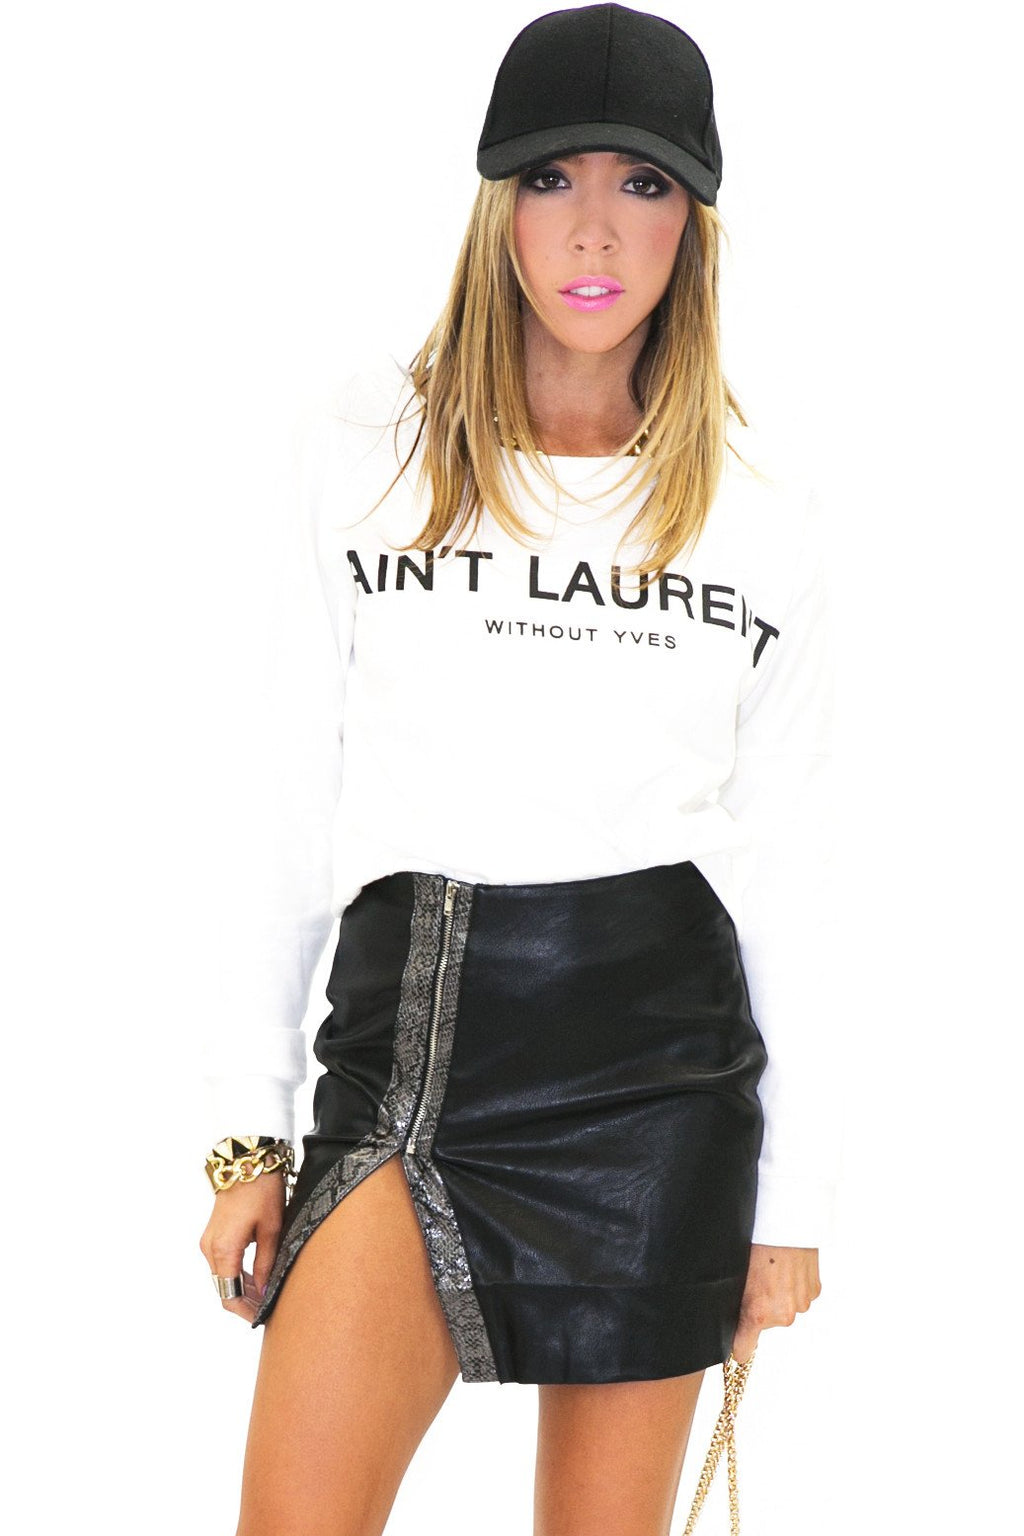 AIN'T LAURENT SWEATER TOP - White - Haute & Rebellious